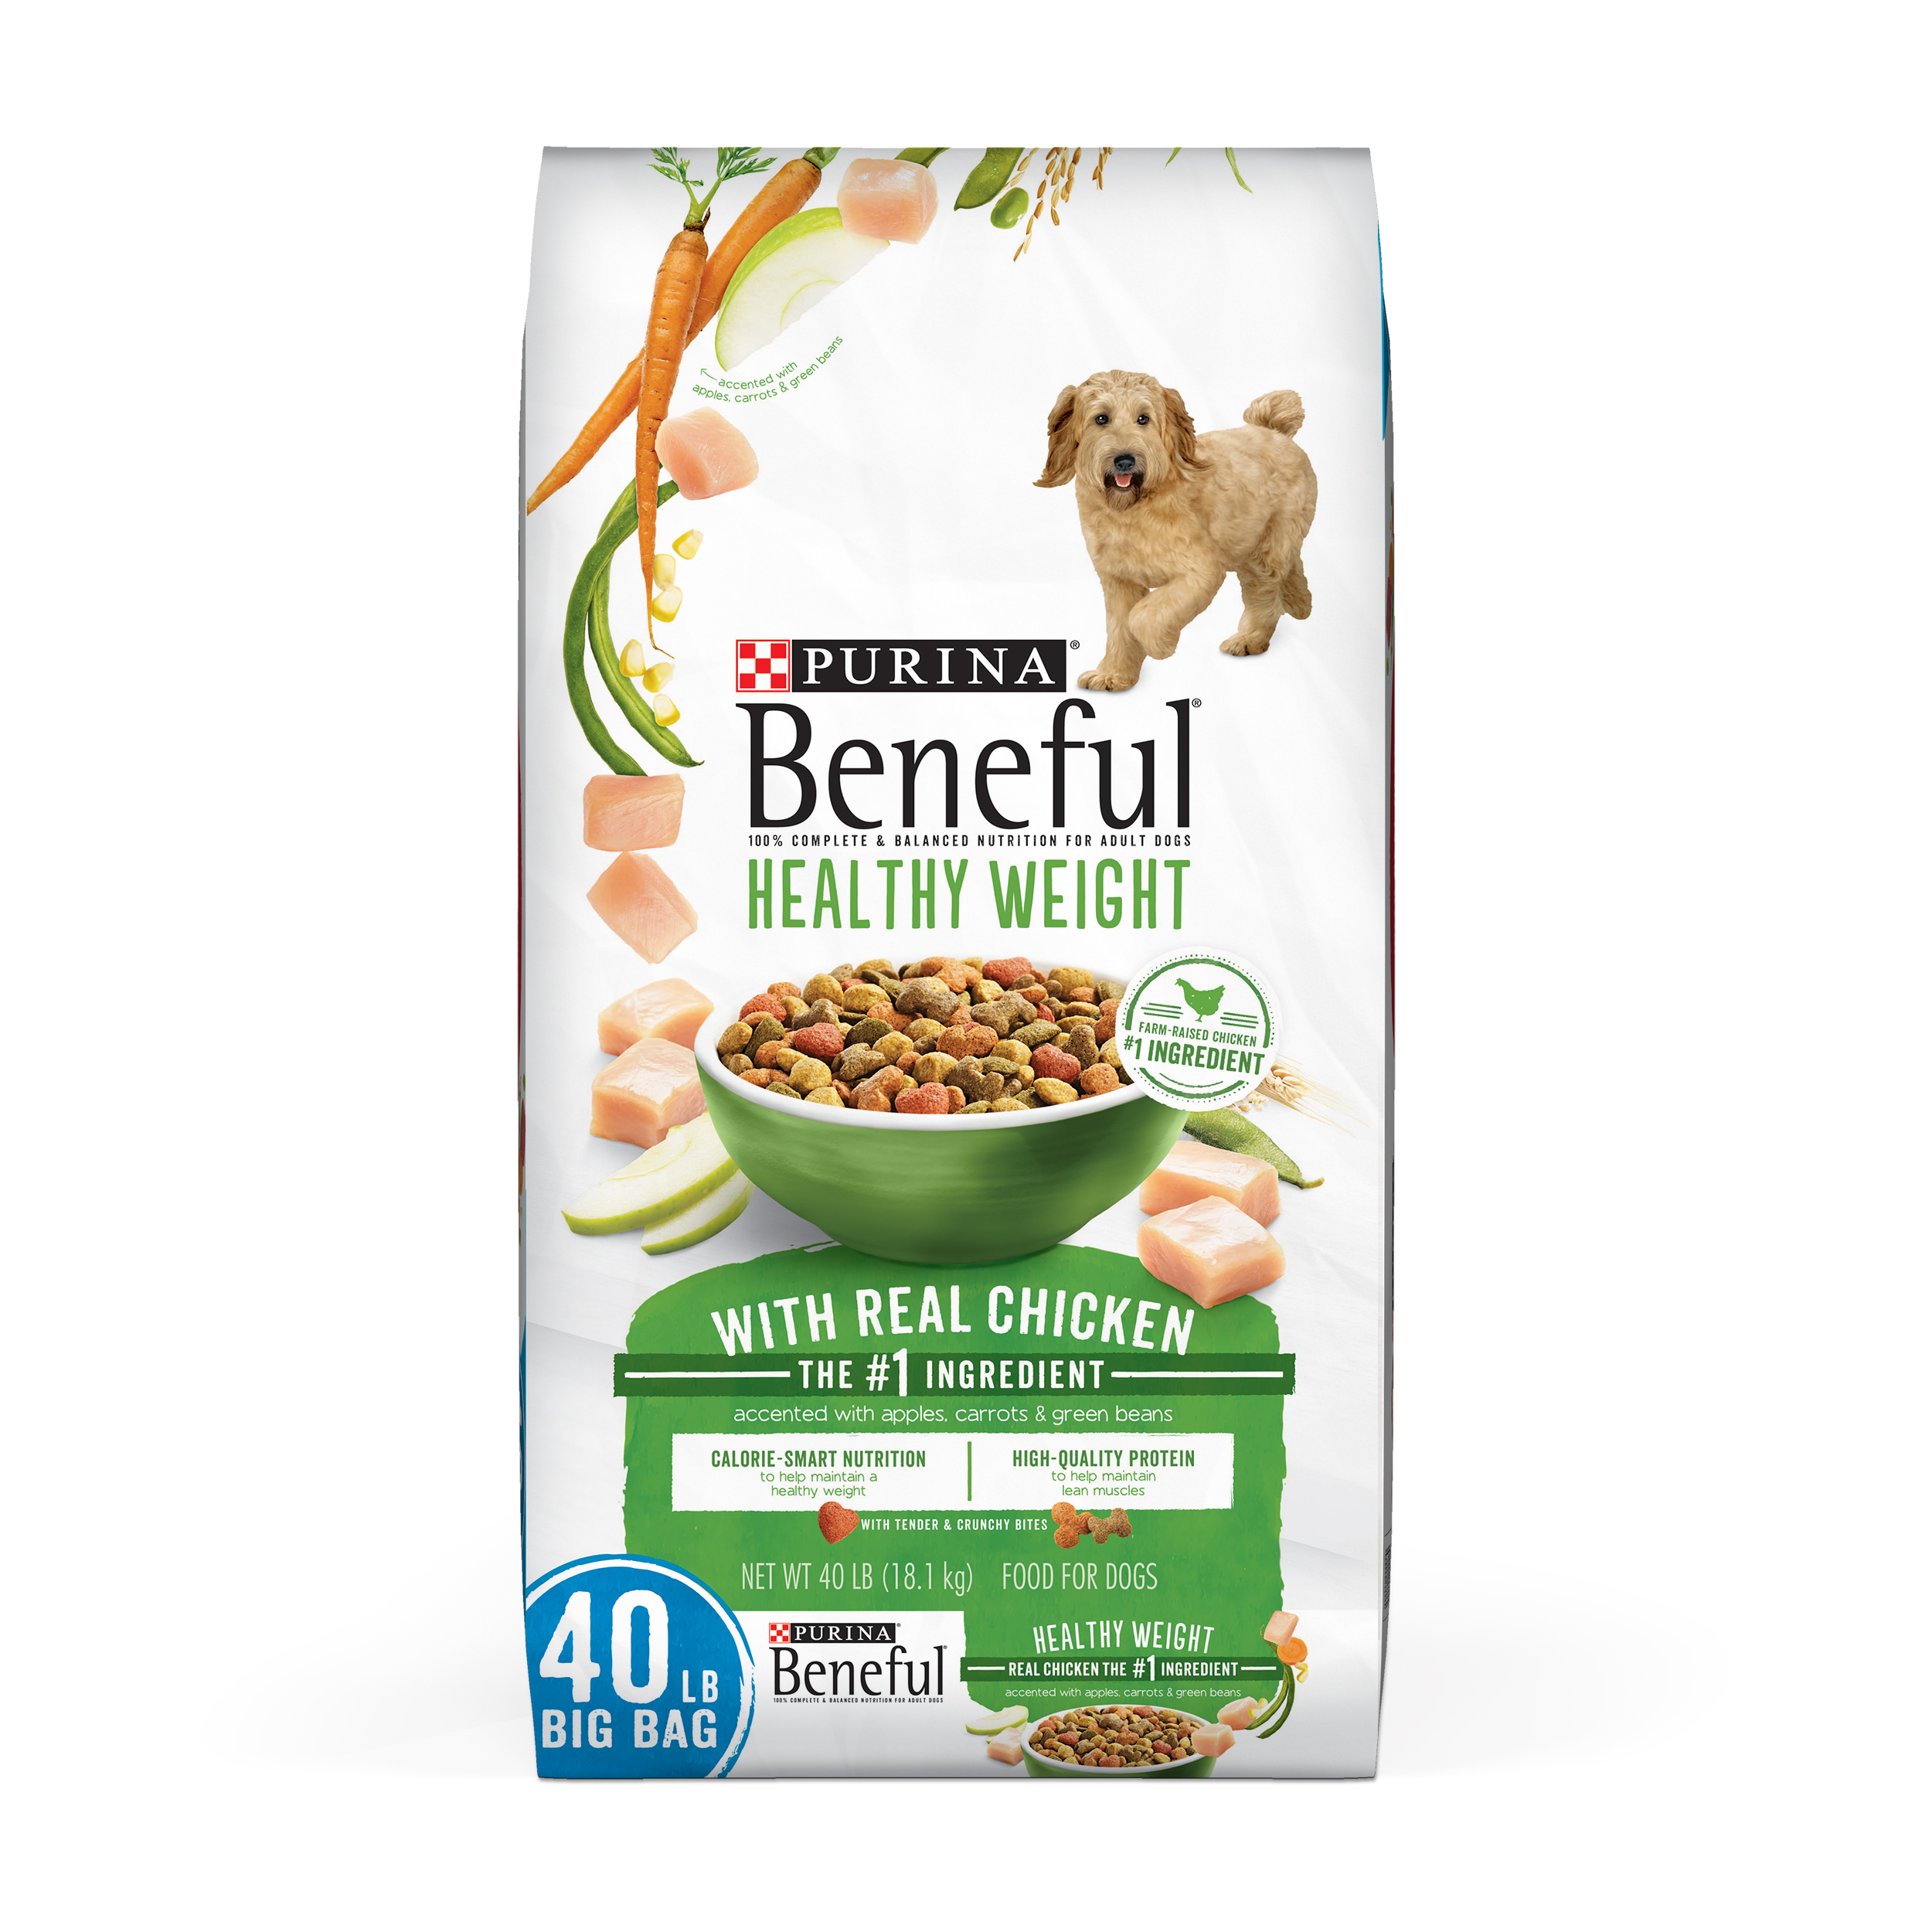 Purina Beneful Healthy Weight With Real Chicken Adult Dry Dog Food - 40 lb. Bag